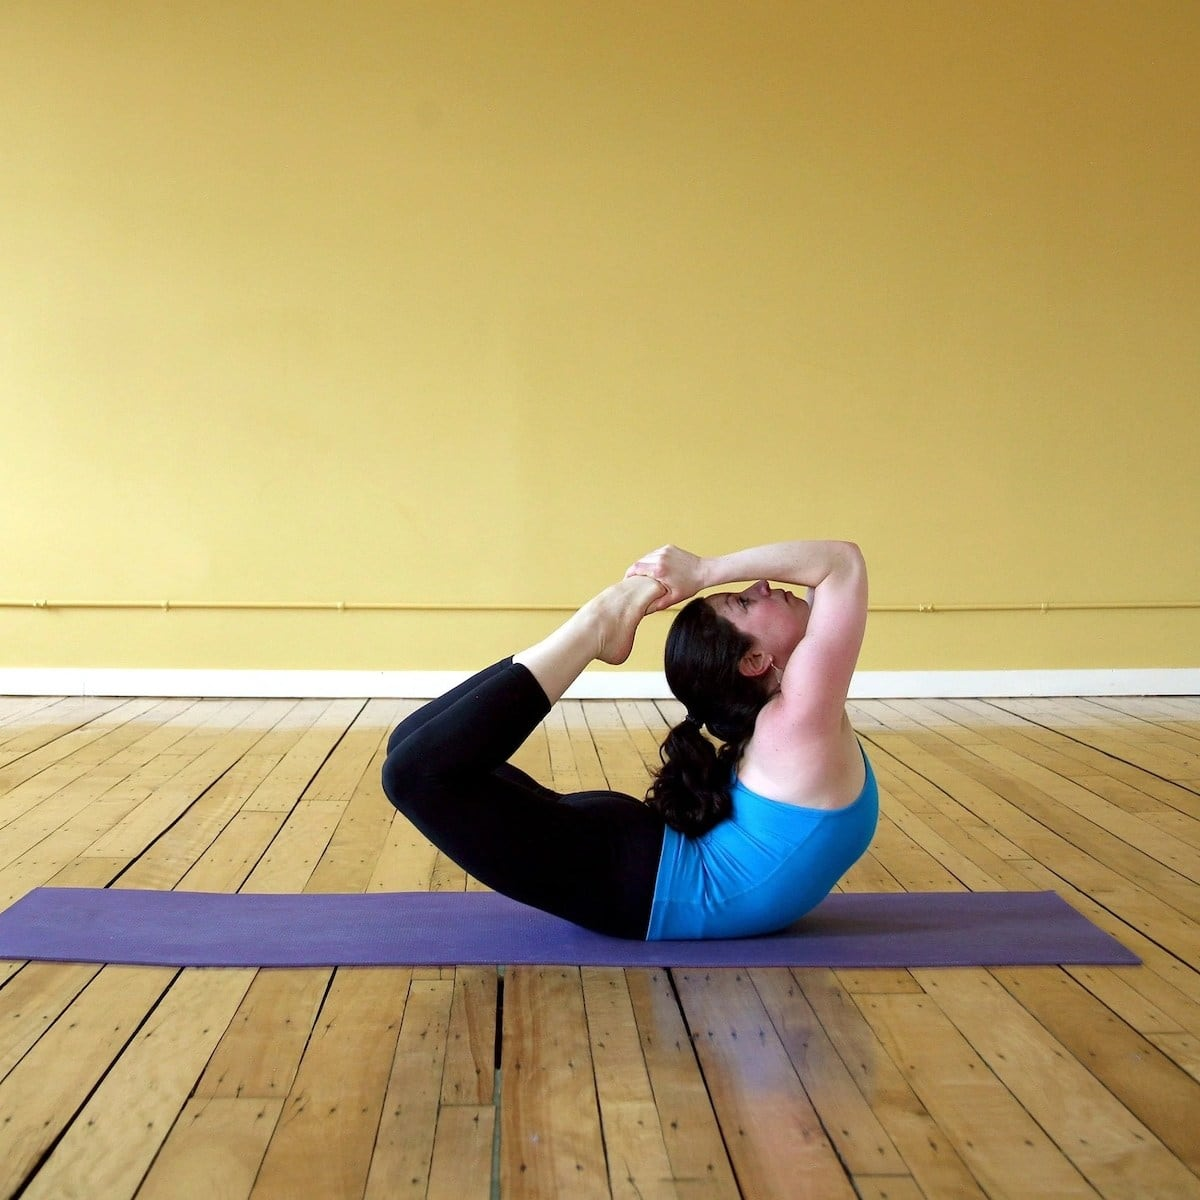 yoga exercises  yoga exercises for flat stomach yoga exercises for beginners